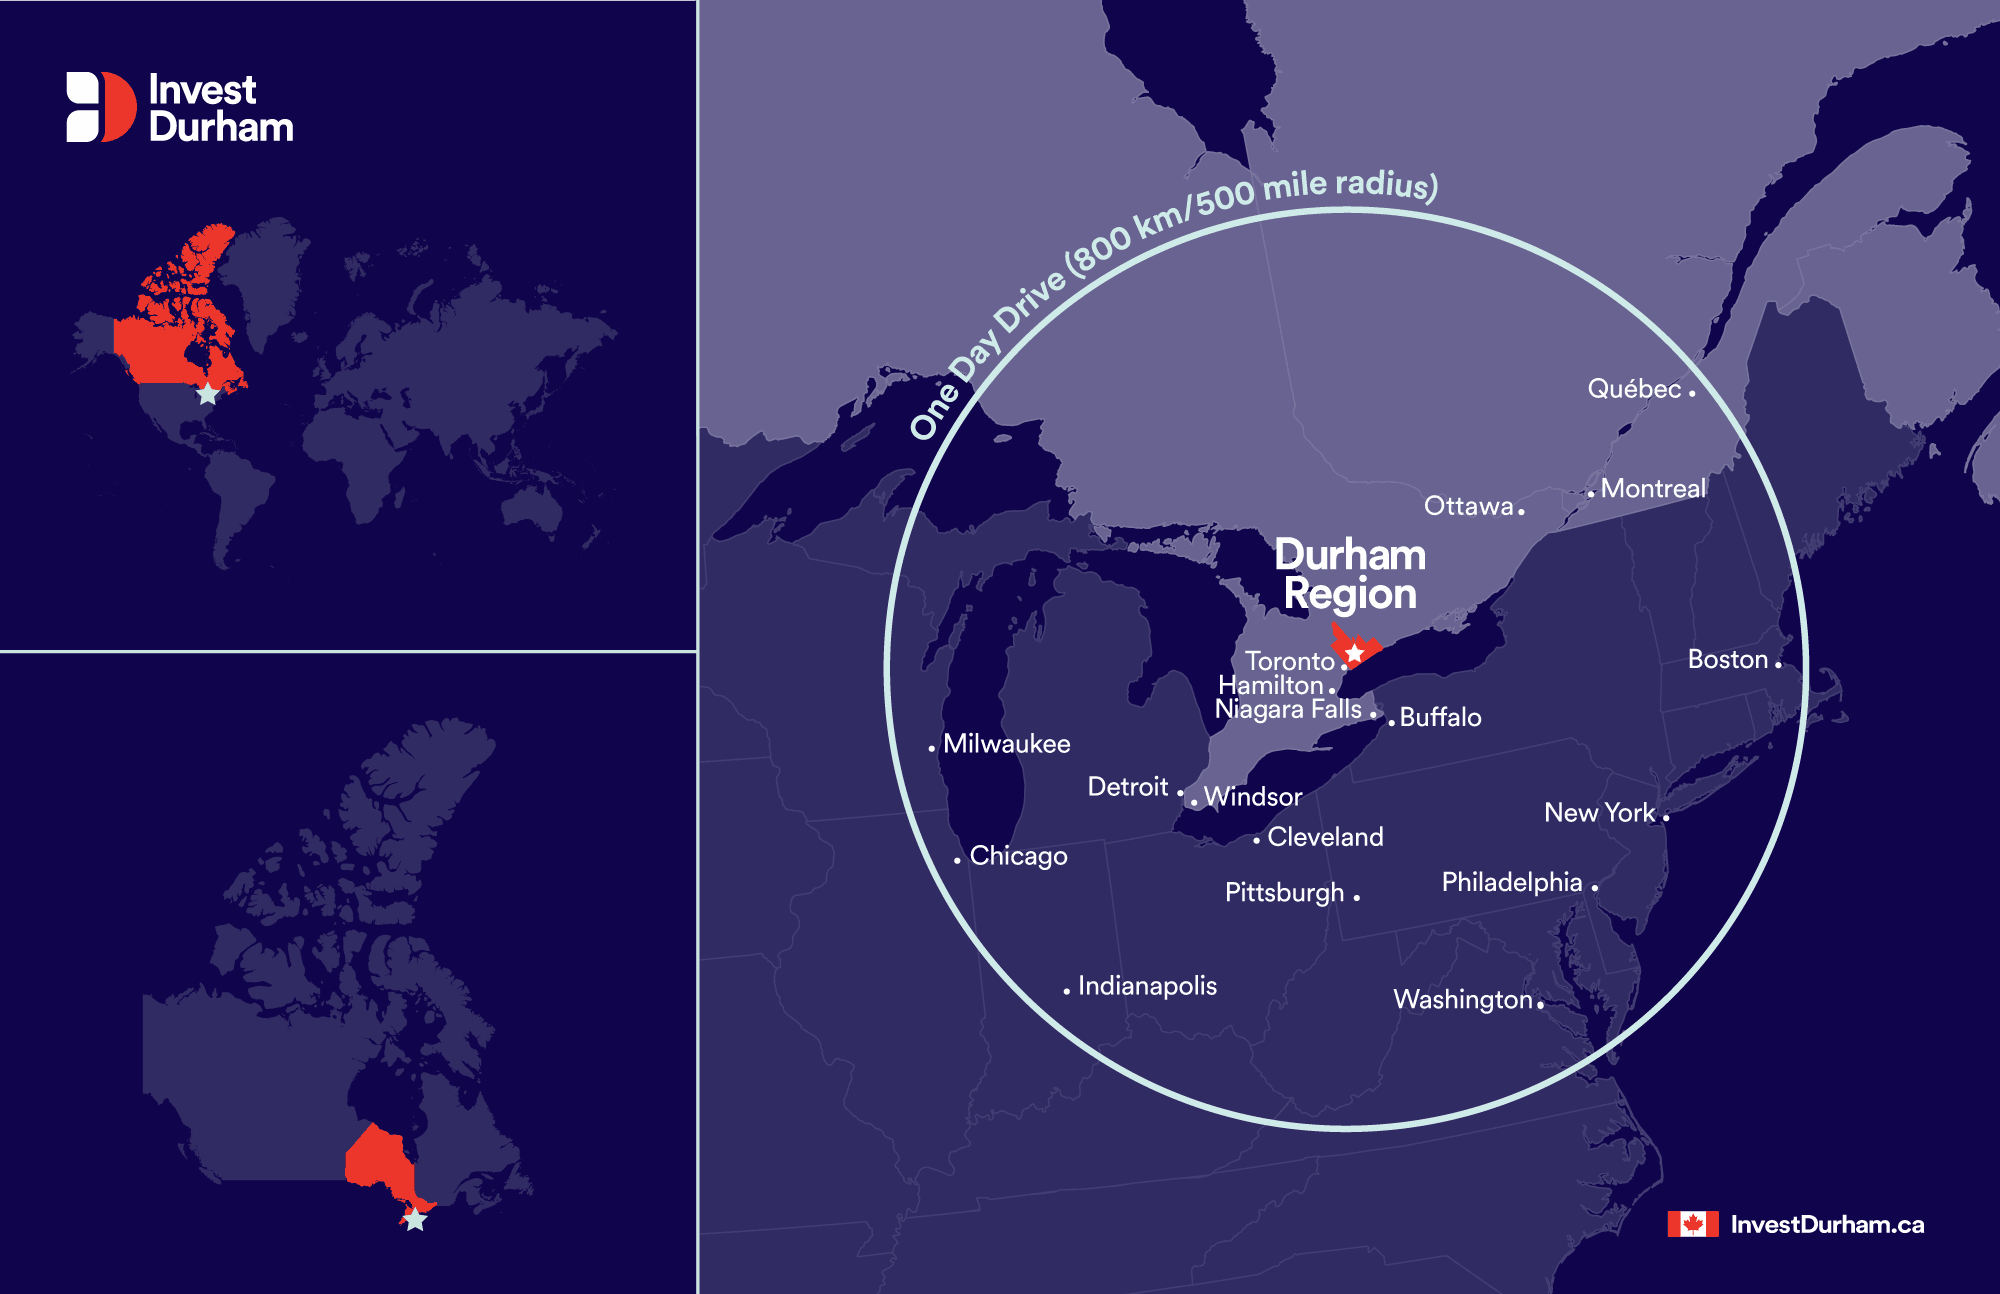 Map of Durham Region and surrounding major cities